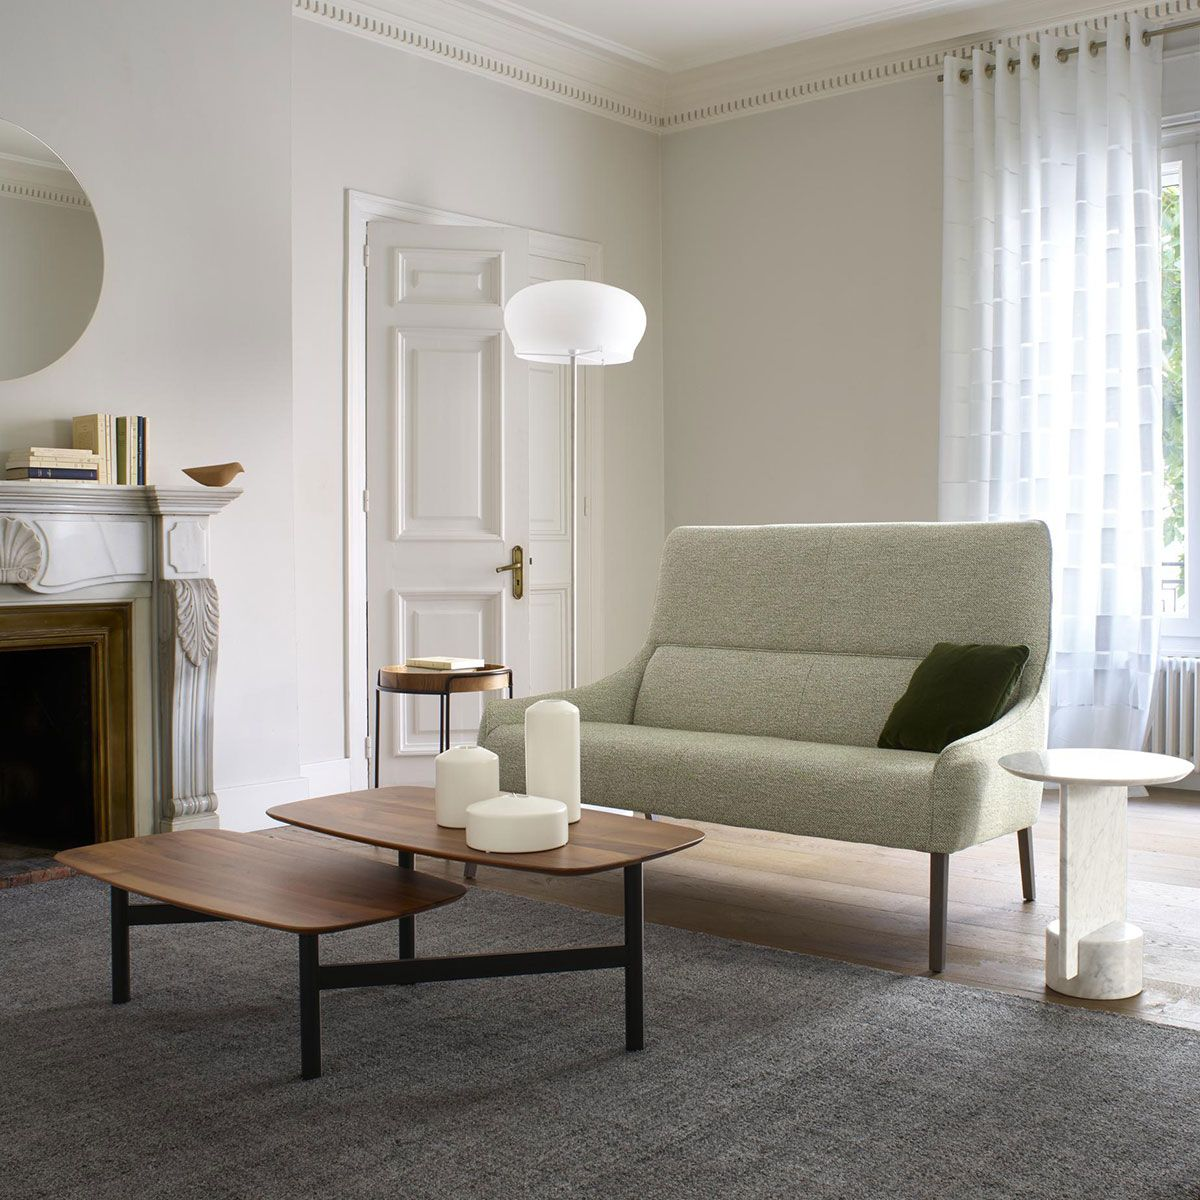 Long Island Sofa Designed By N Nasr C Horner For Ligne Roset Available At Linea Inc Modern Furniture Los Angeles